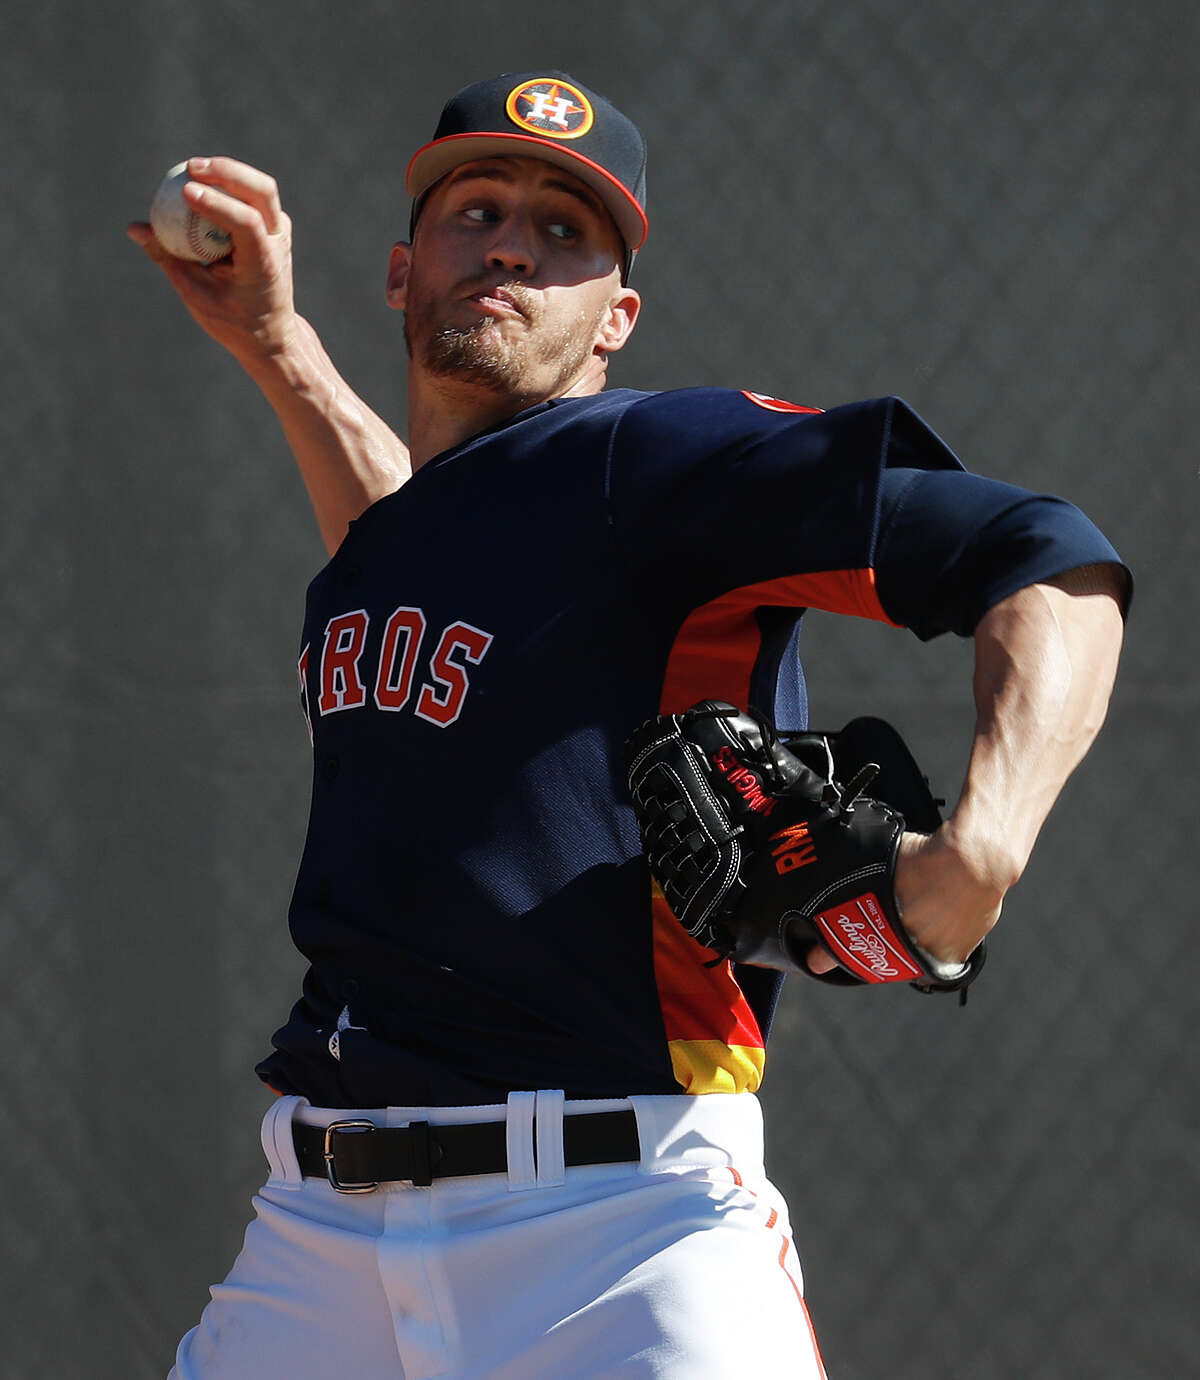 Astros closer Ken Giles throws a bullpen session during spring training at The Ballpark of the Palm Beaches. He worked hard on his endurance in the offseason.